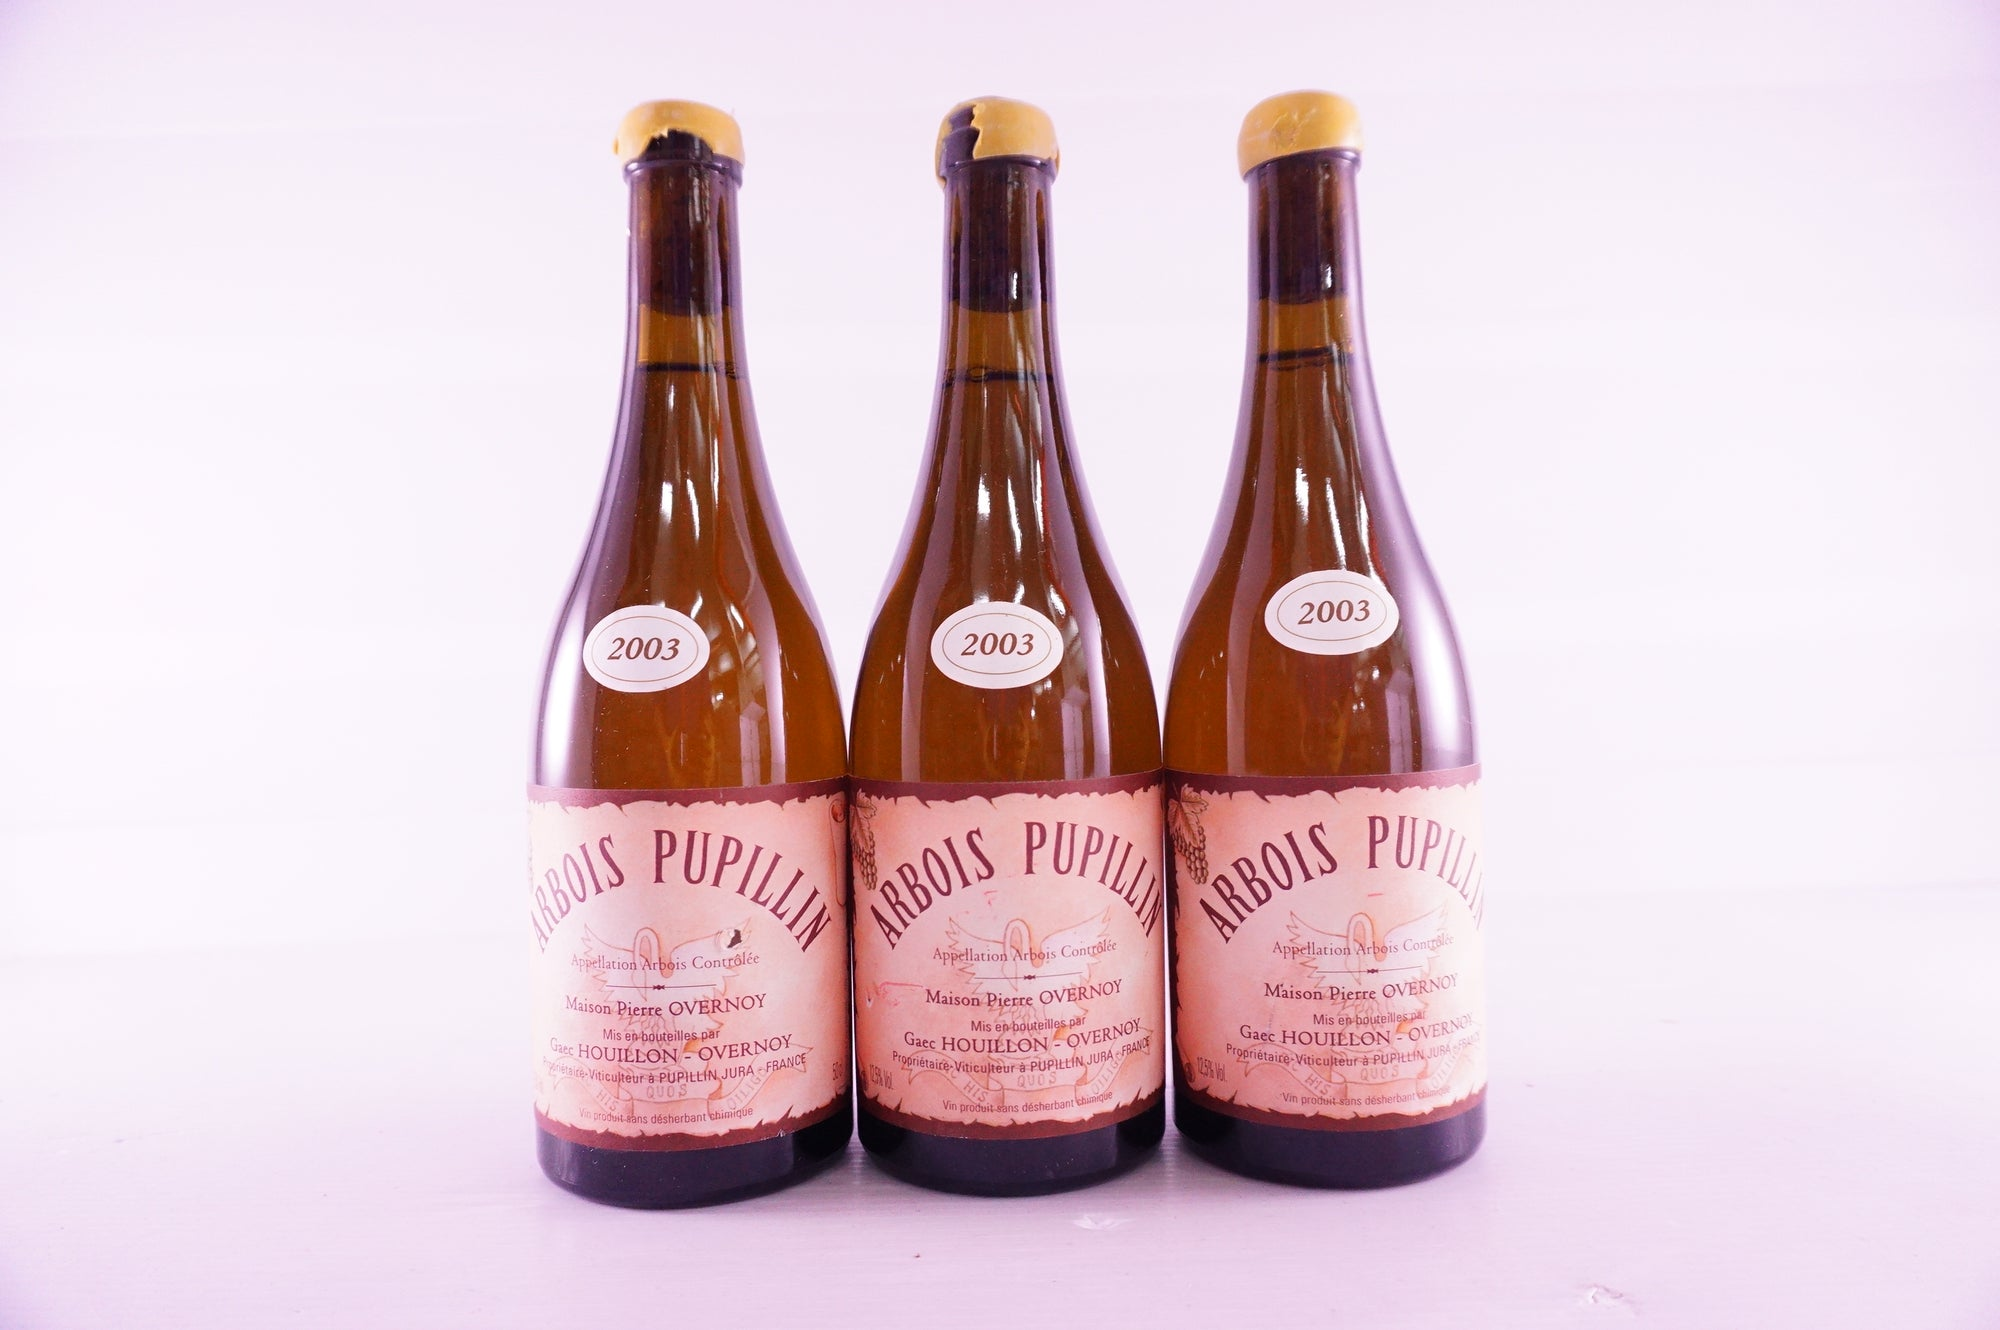 Pierre Overnoy Arbois Pupillin Savagnin Ouille 2003